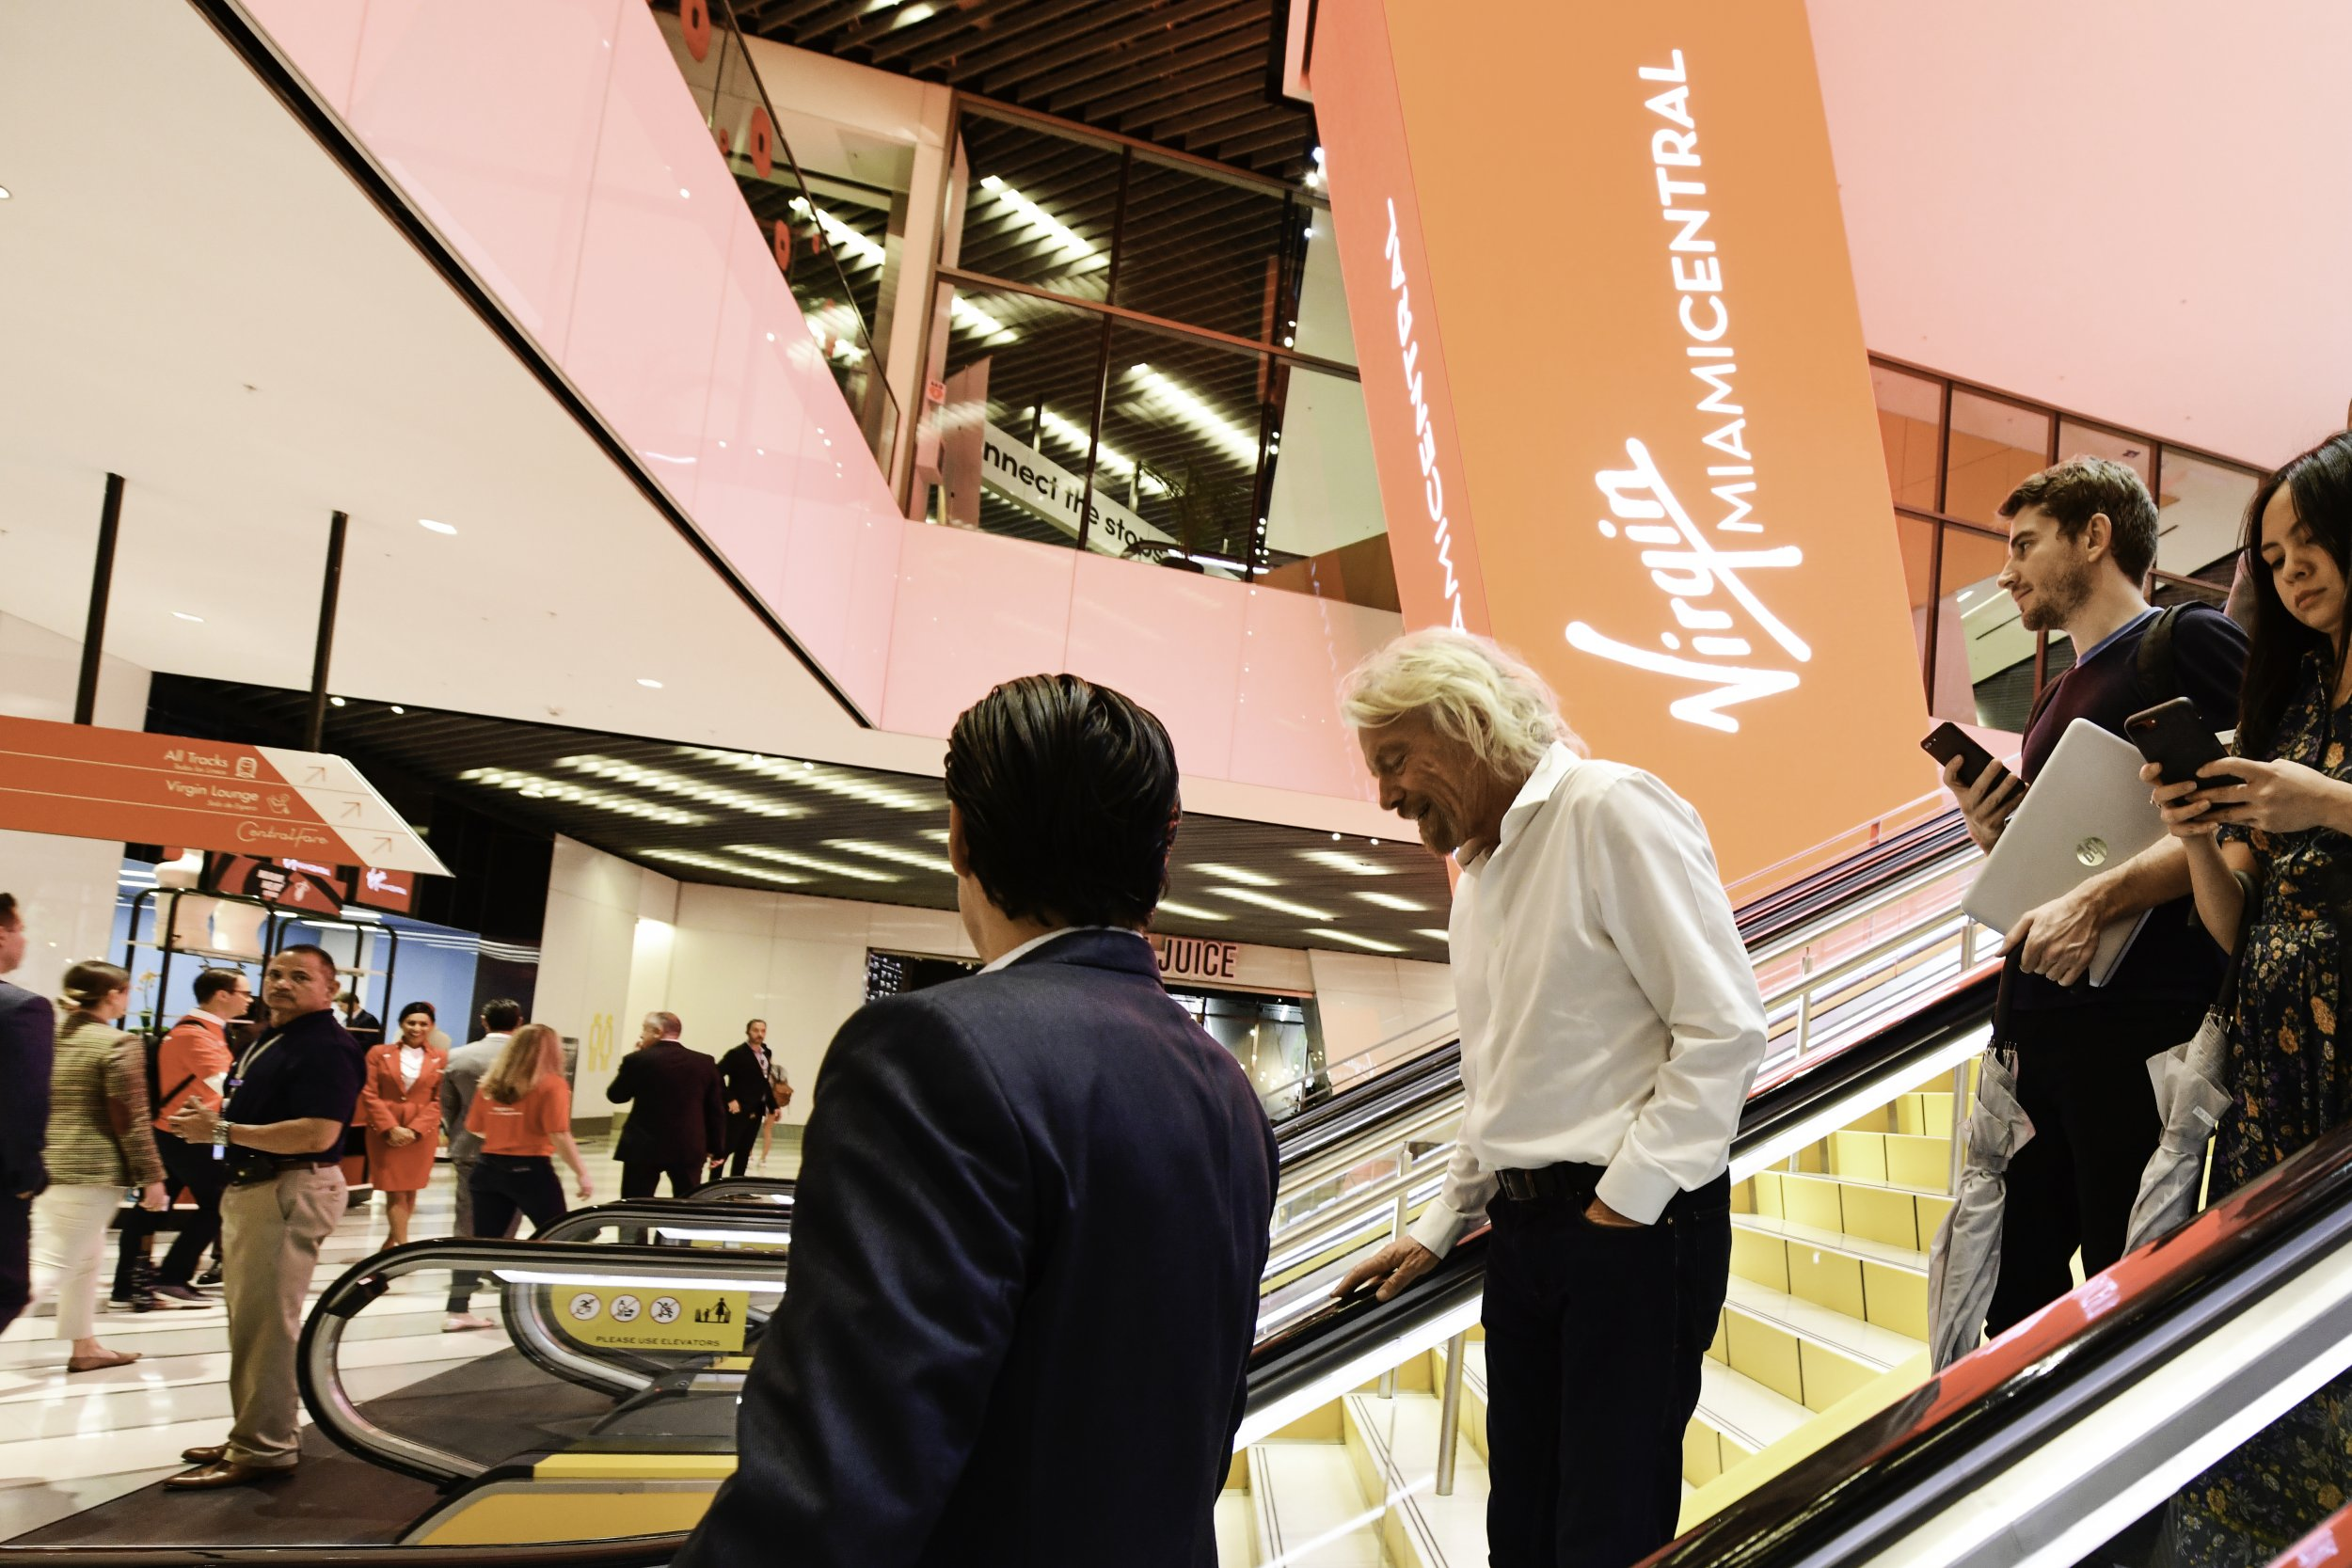 In Miami, Richard Branson Hits The Ground Running With